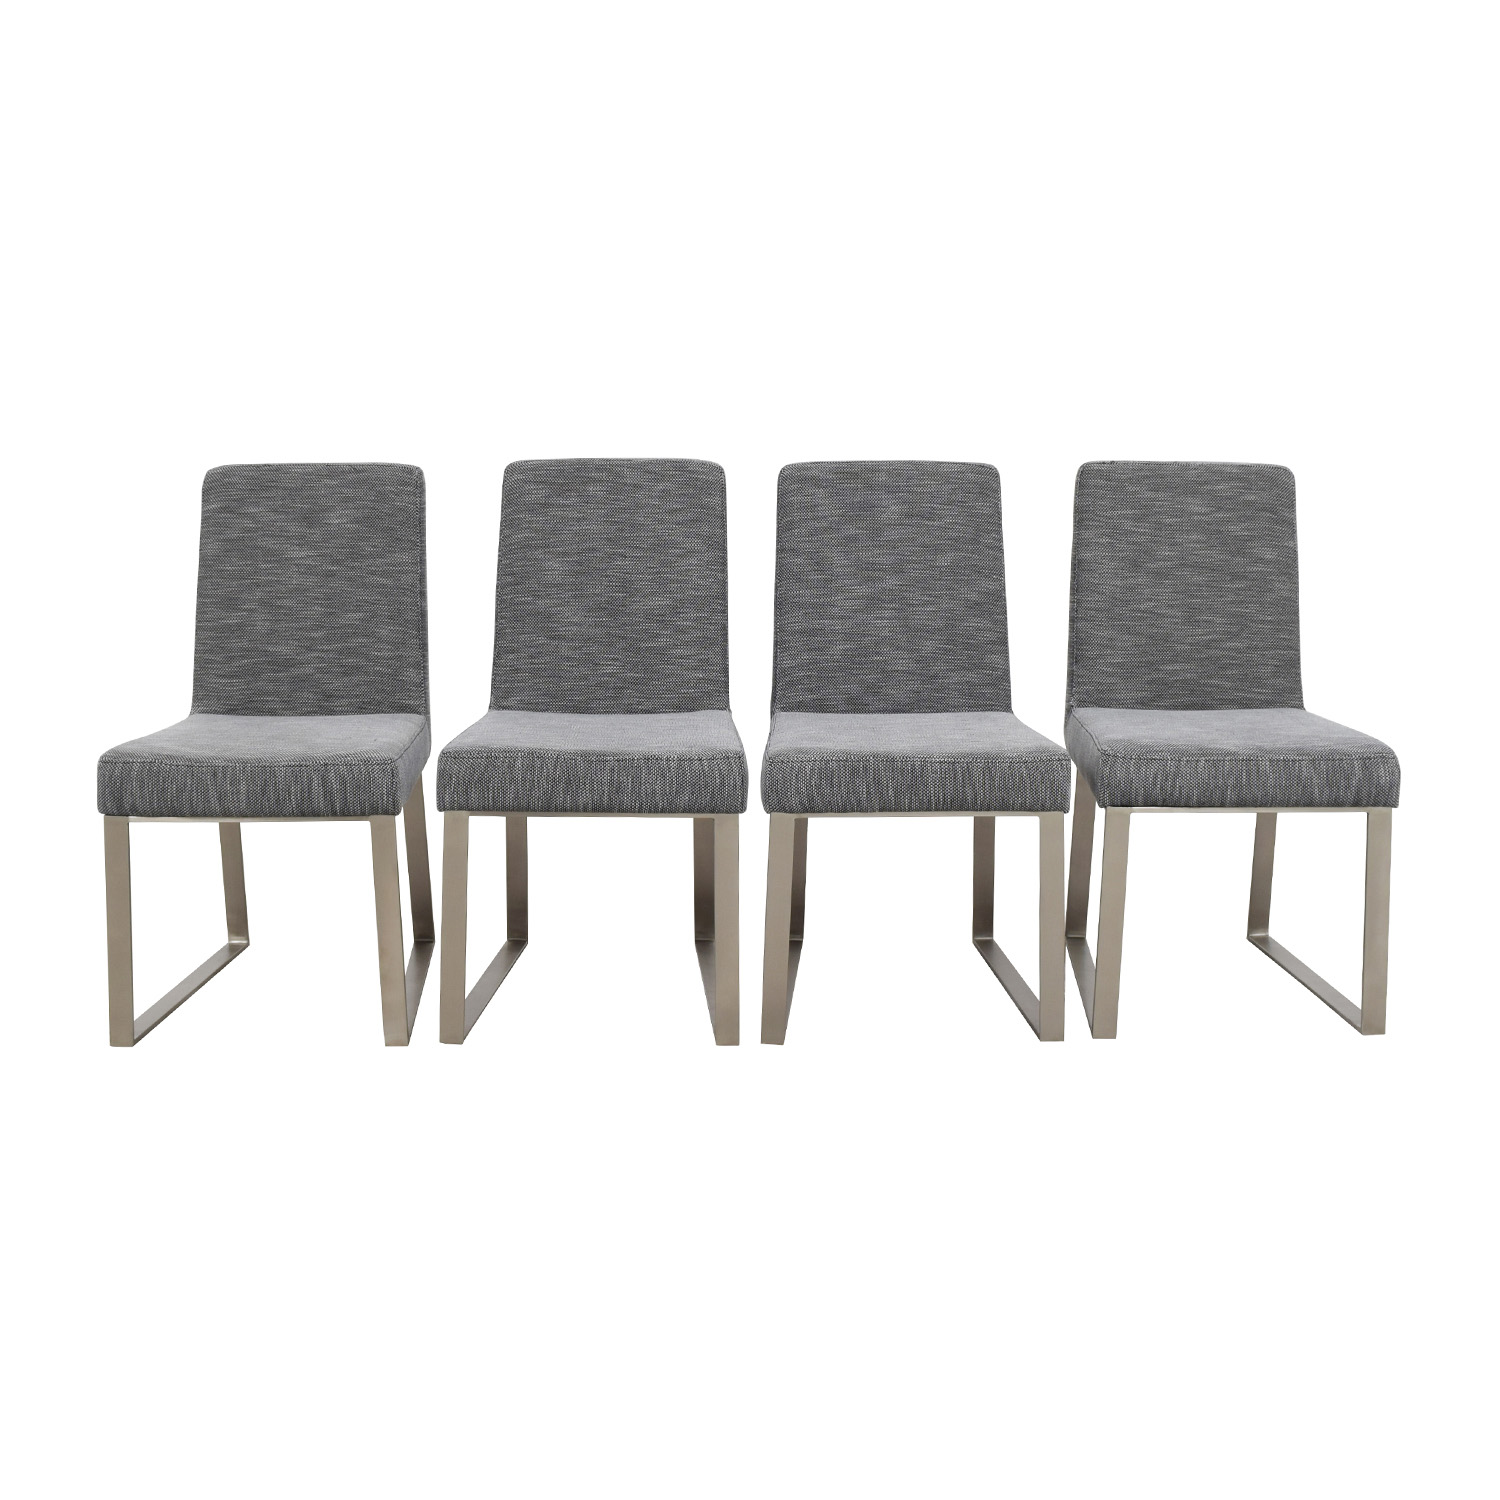 InMod Vivo Grey Chairs InMod